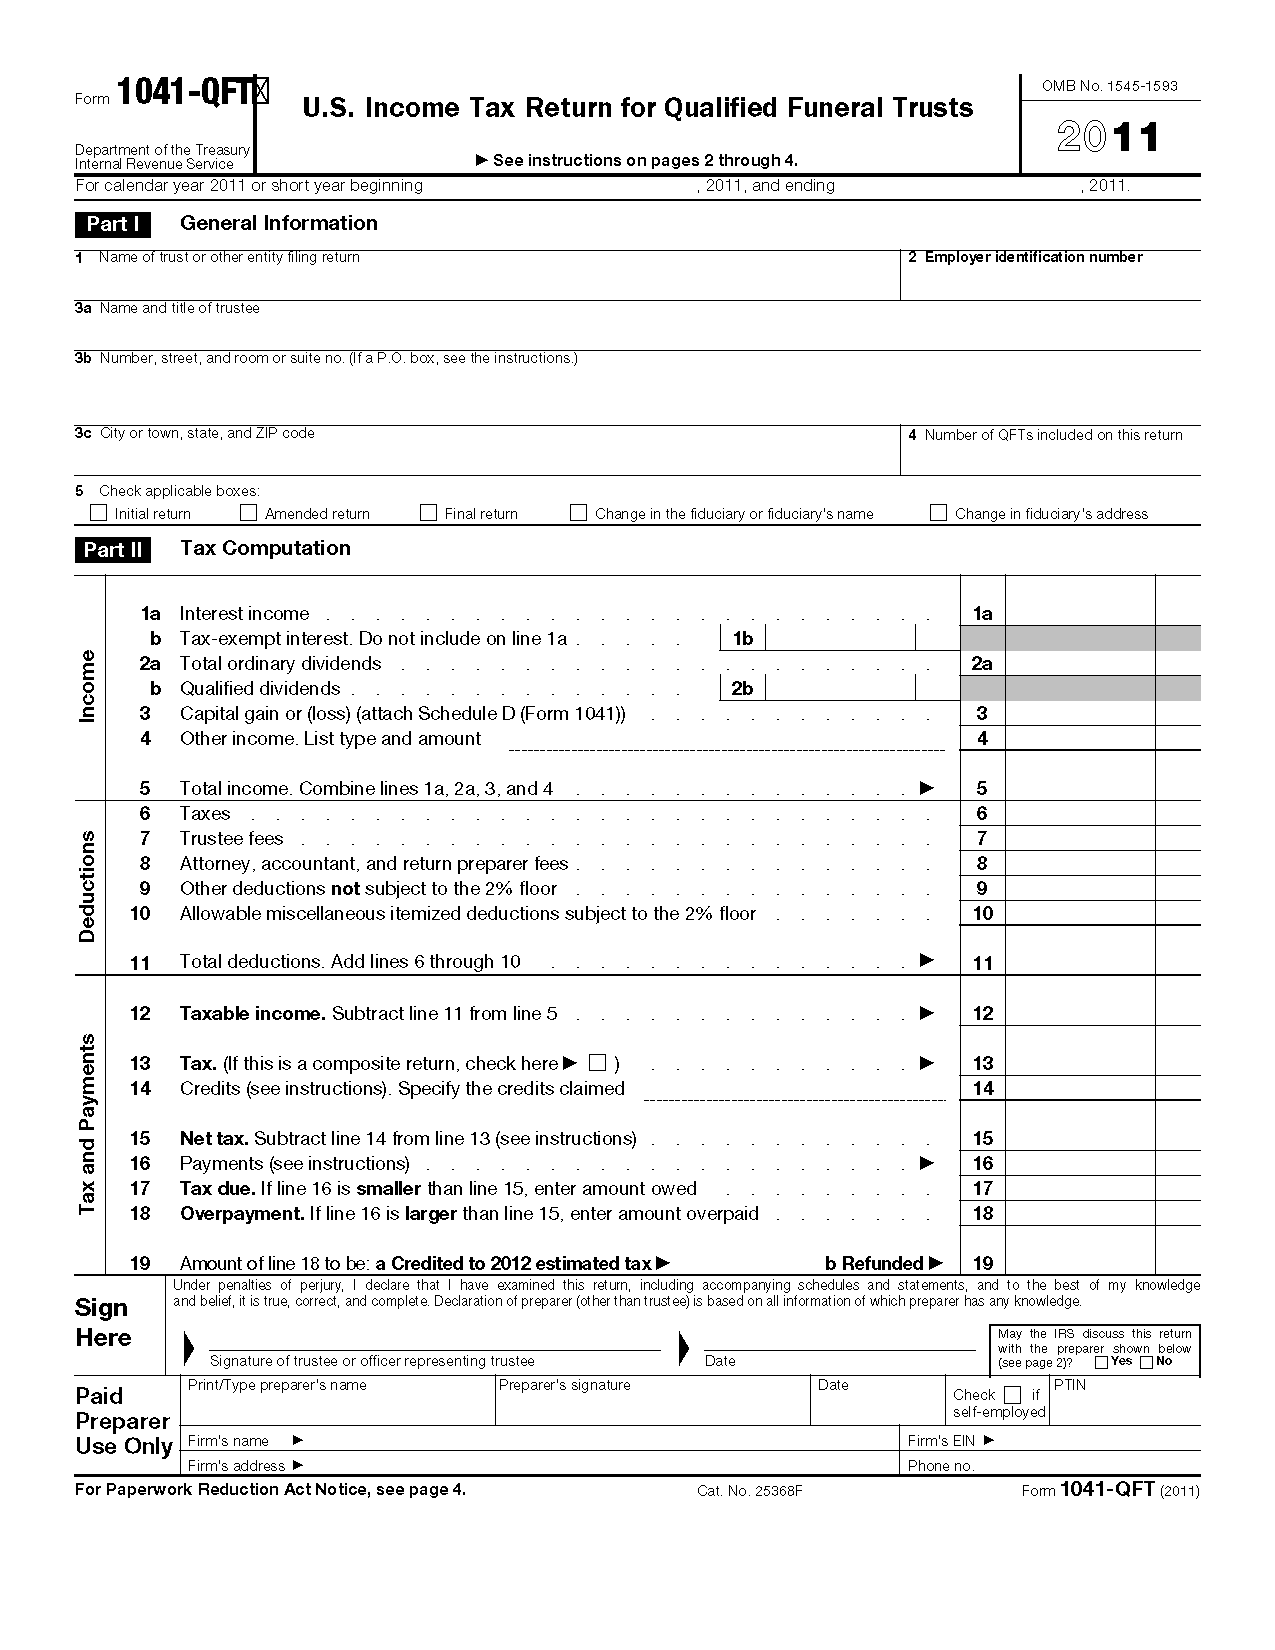 Form 1041-QFT U.S. Income Tax Return for Qualified Funeral Trusts